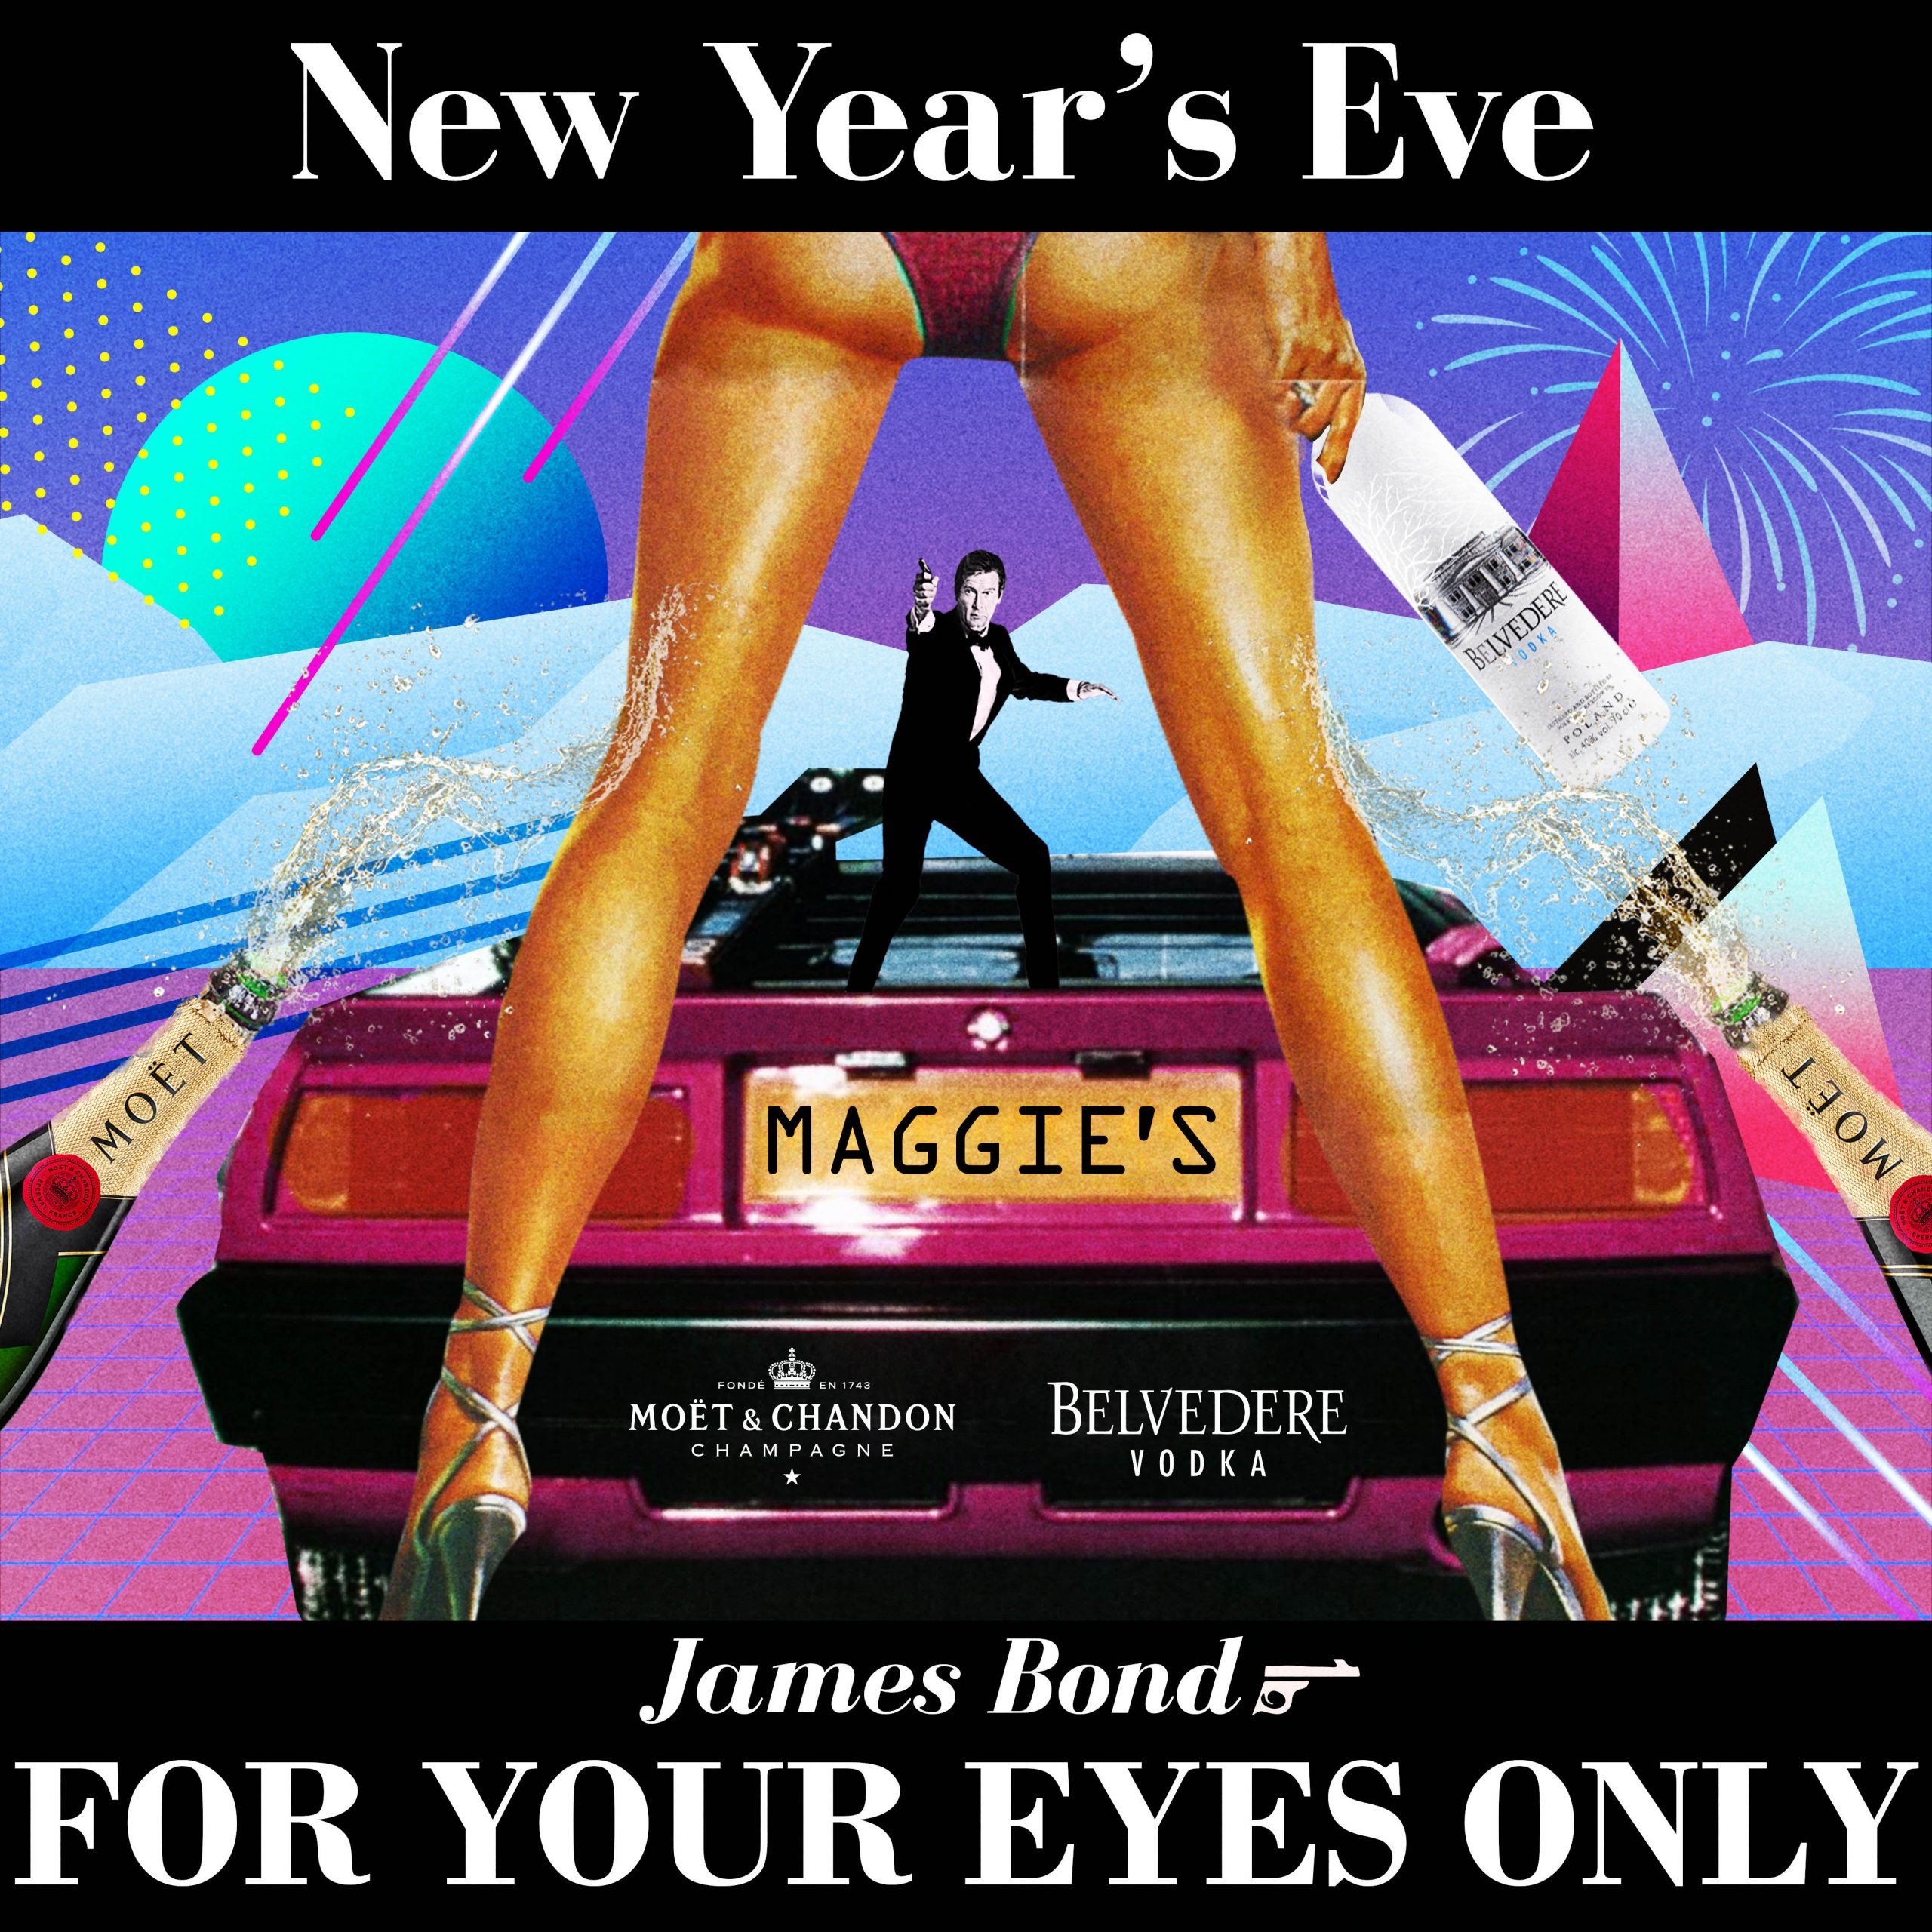 NYE James Bond – For Your Eyes Only